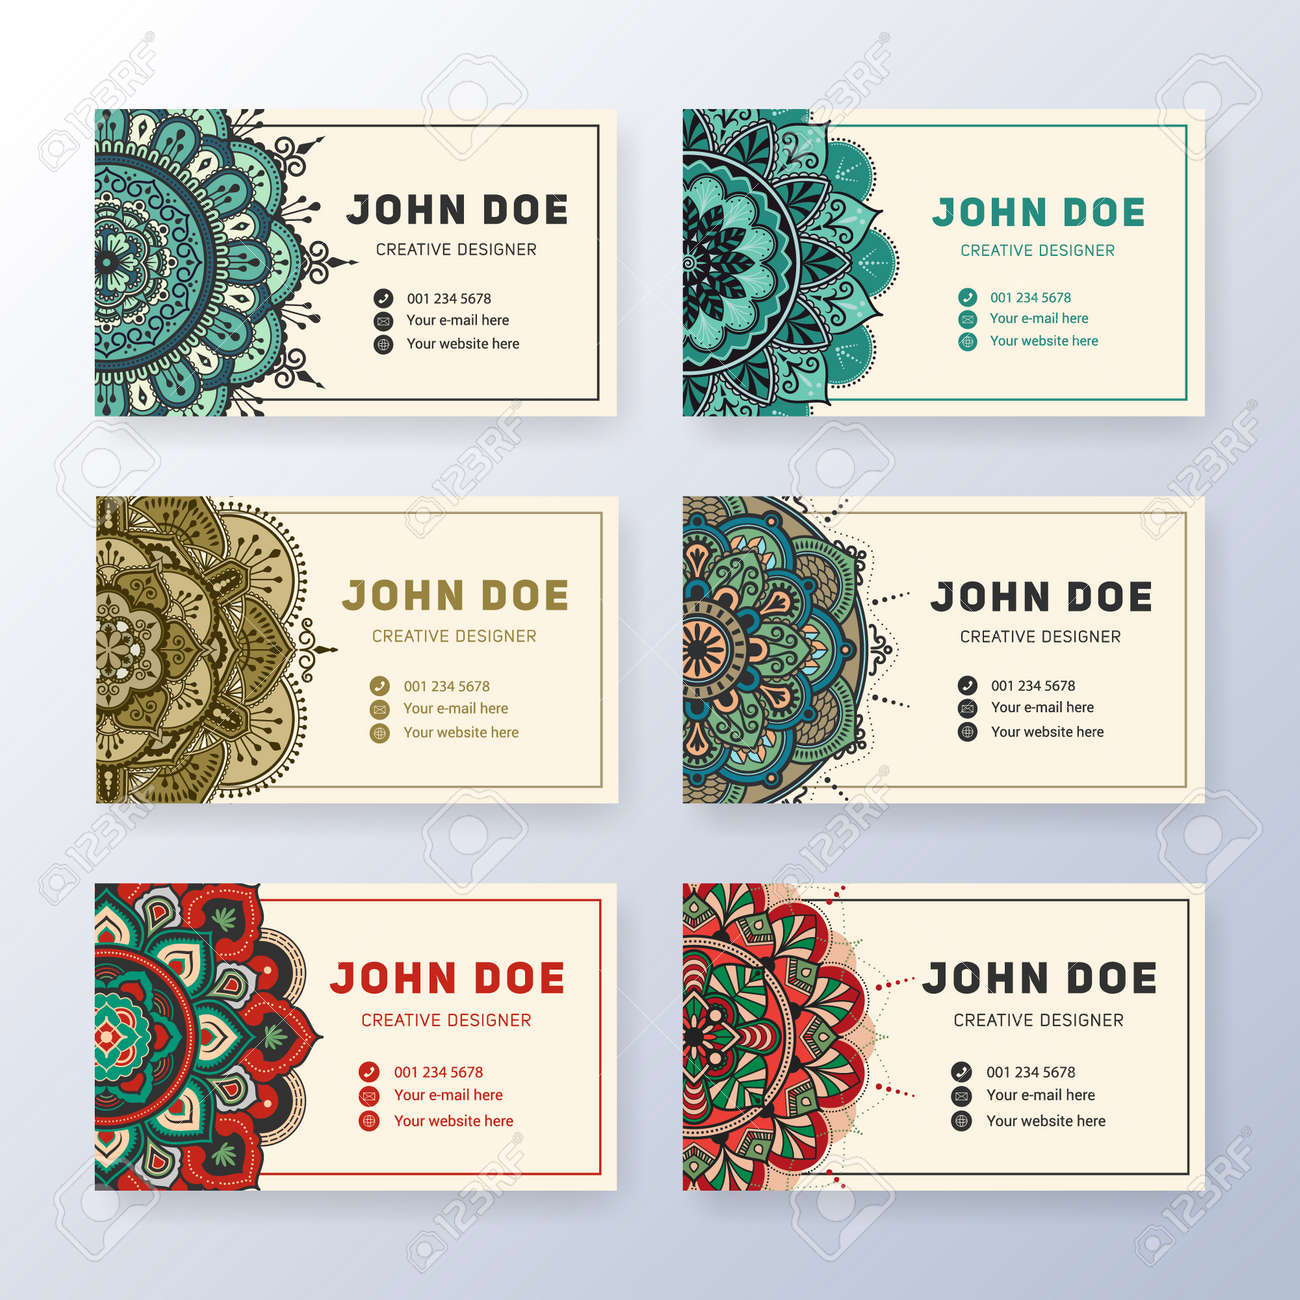 Creative useful business card design vintage colored mandala creative useful business card design vintage colored mandala tag round ornament vector illustration colourmoves